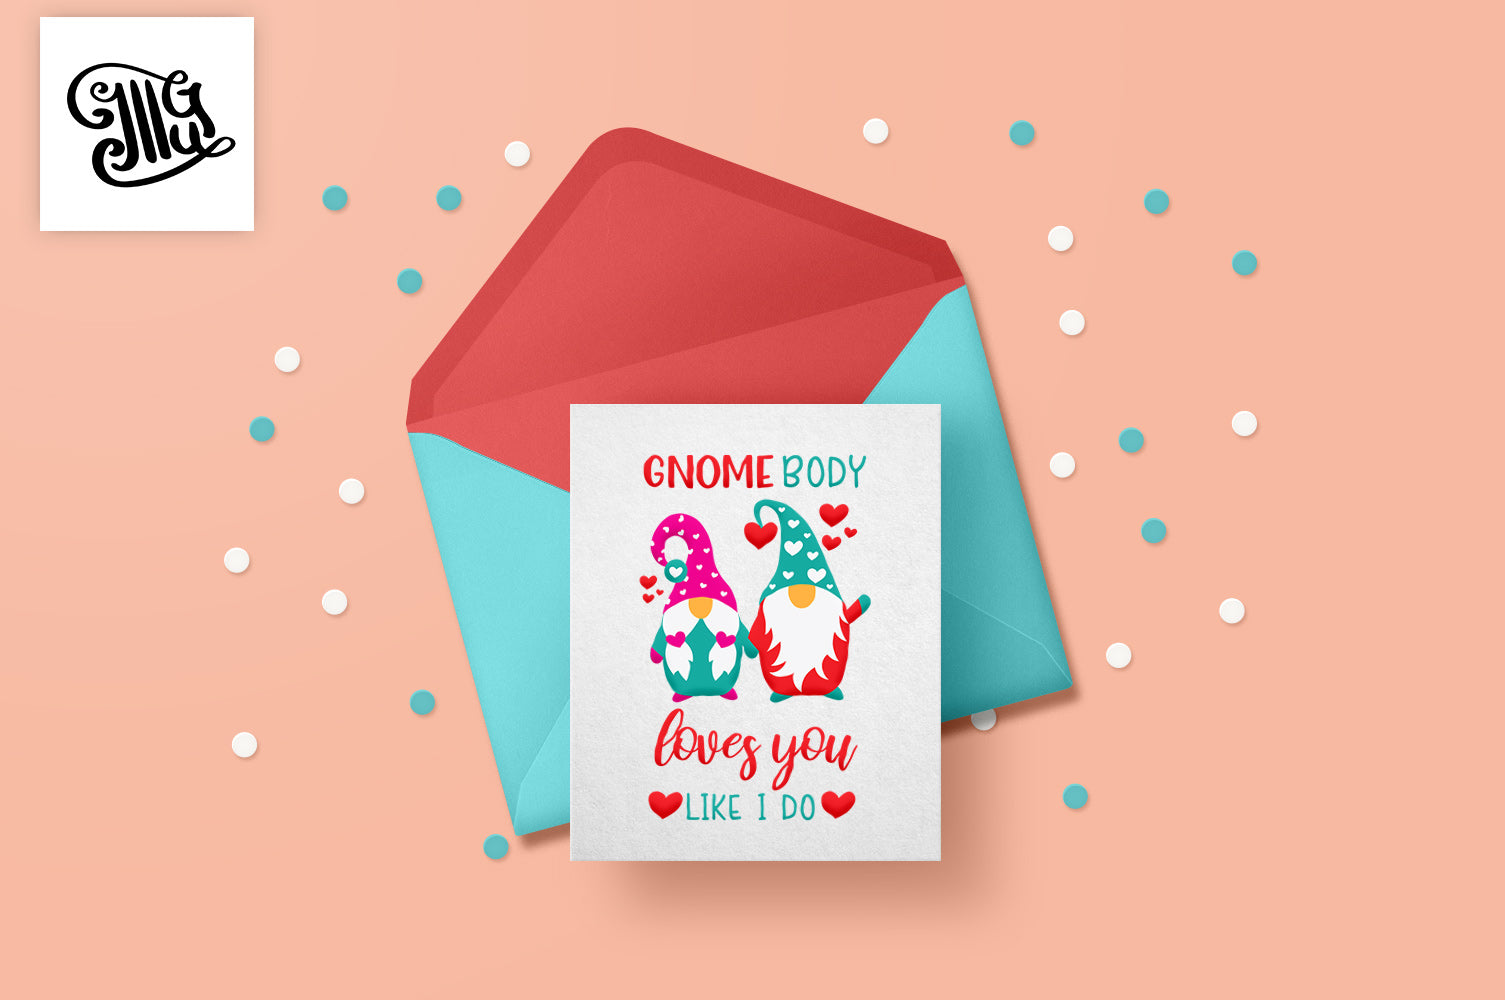 Valentine gnome svg for DIY valentine cards printable | Valentine shirt SVG | Cute gnome couple svg | Gnomebody love you like I do |-by Illustrator Guru